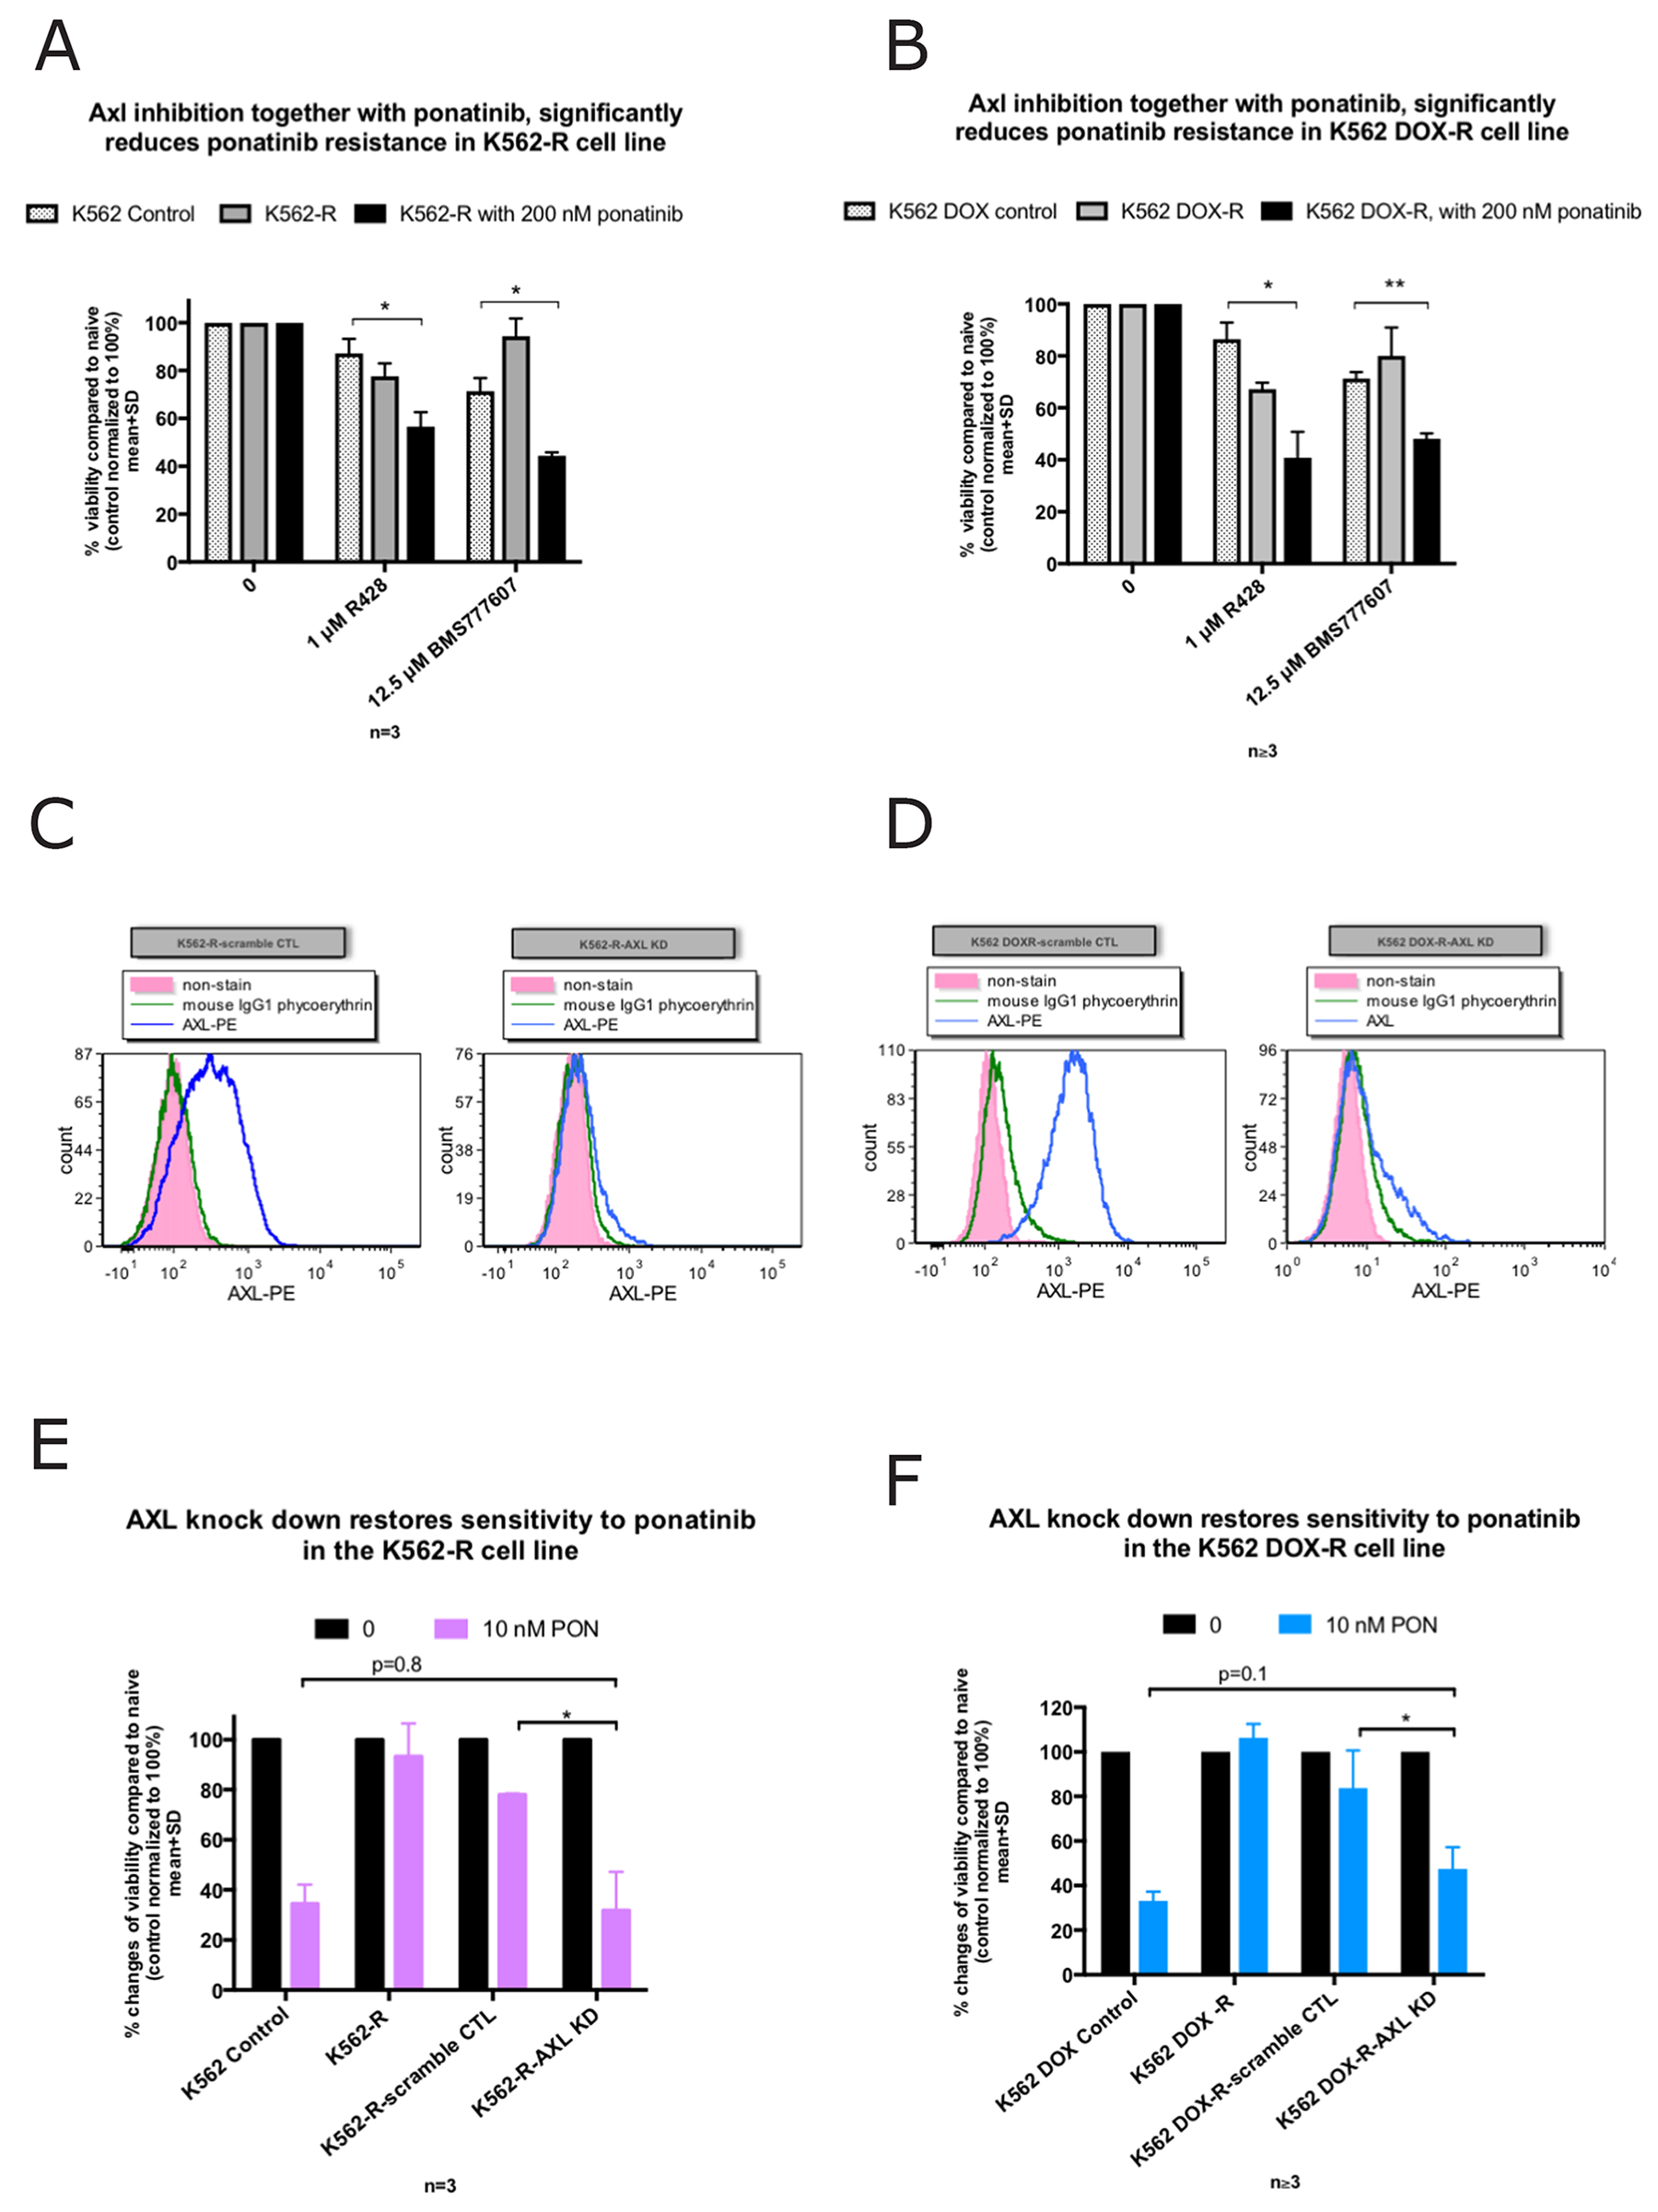 Inhibition of Axl restores ponatinib sensitivity in the K562-R and K562 DOX-R cell lines while AXL knockdown increases ponatinib sensitivity.